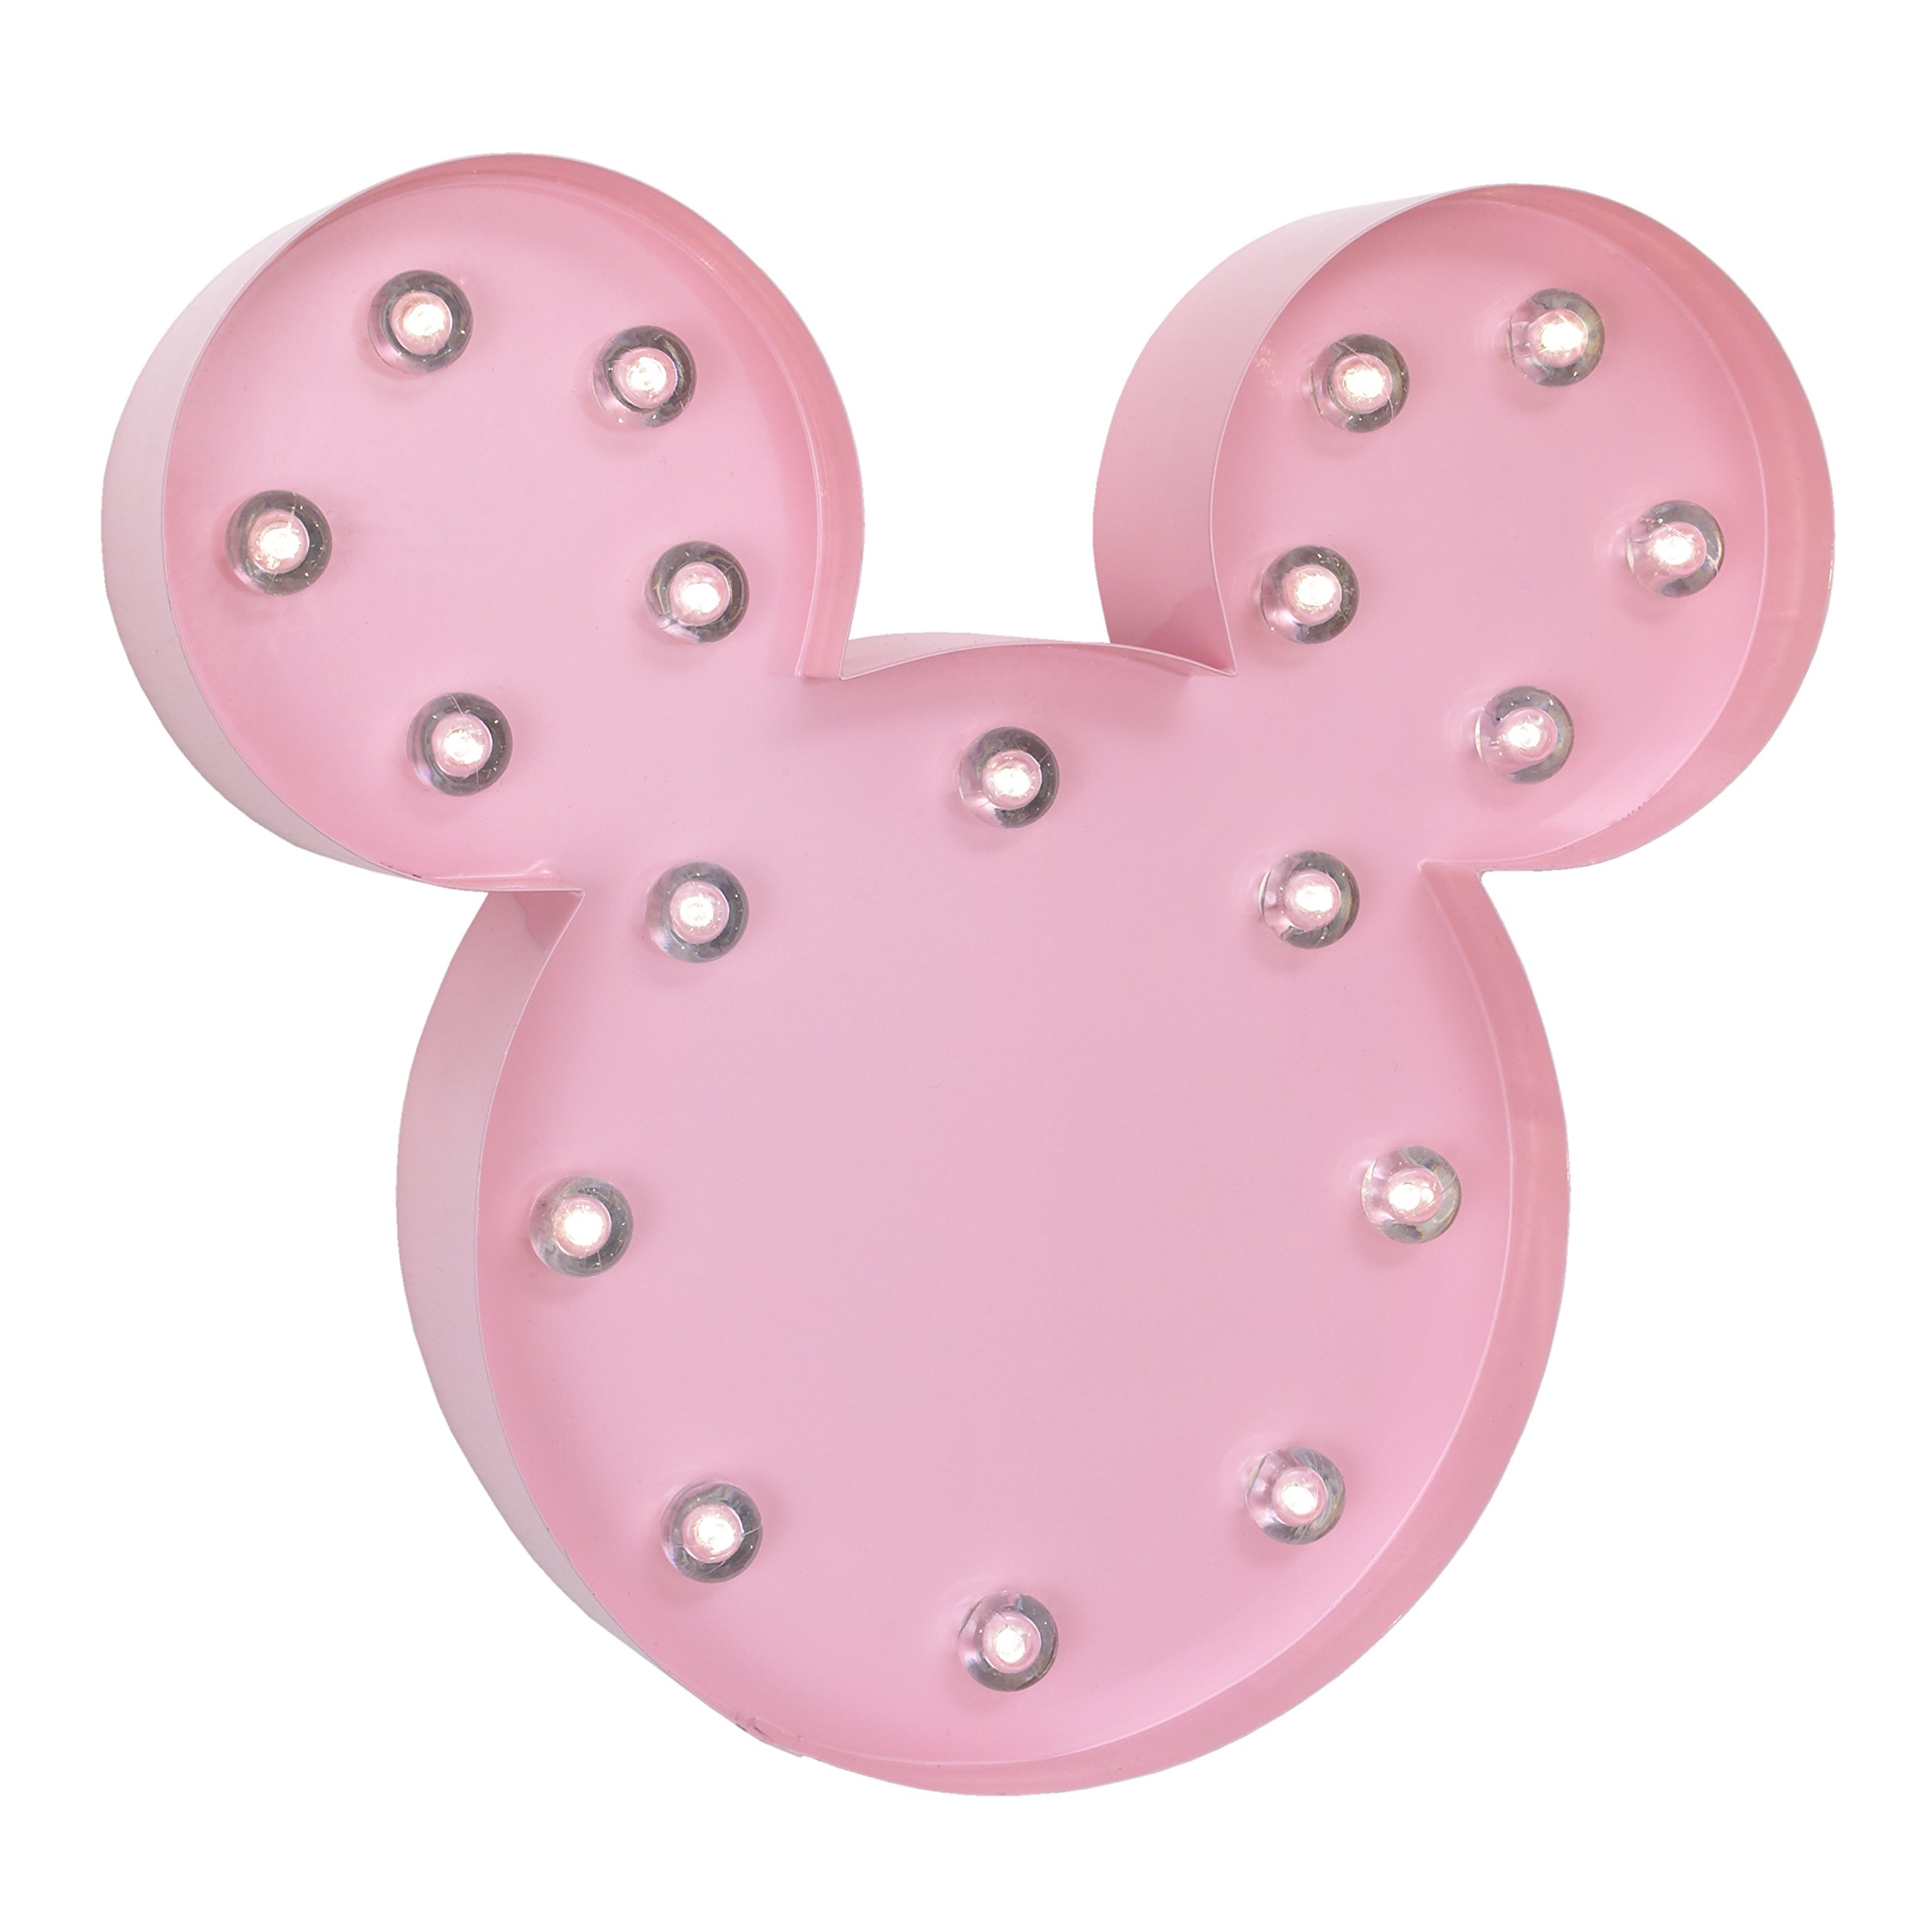 Disney Minnie Mouse Light Up Nursery Wall Decor with 2 Hour Timer, Pink